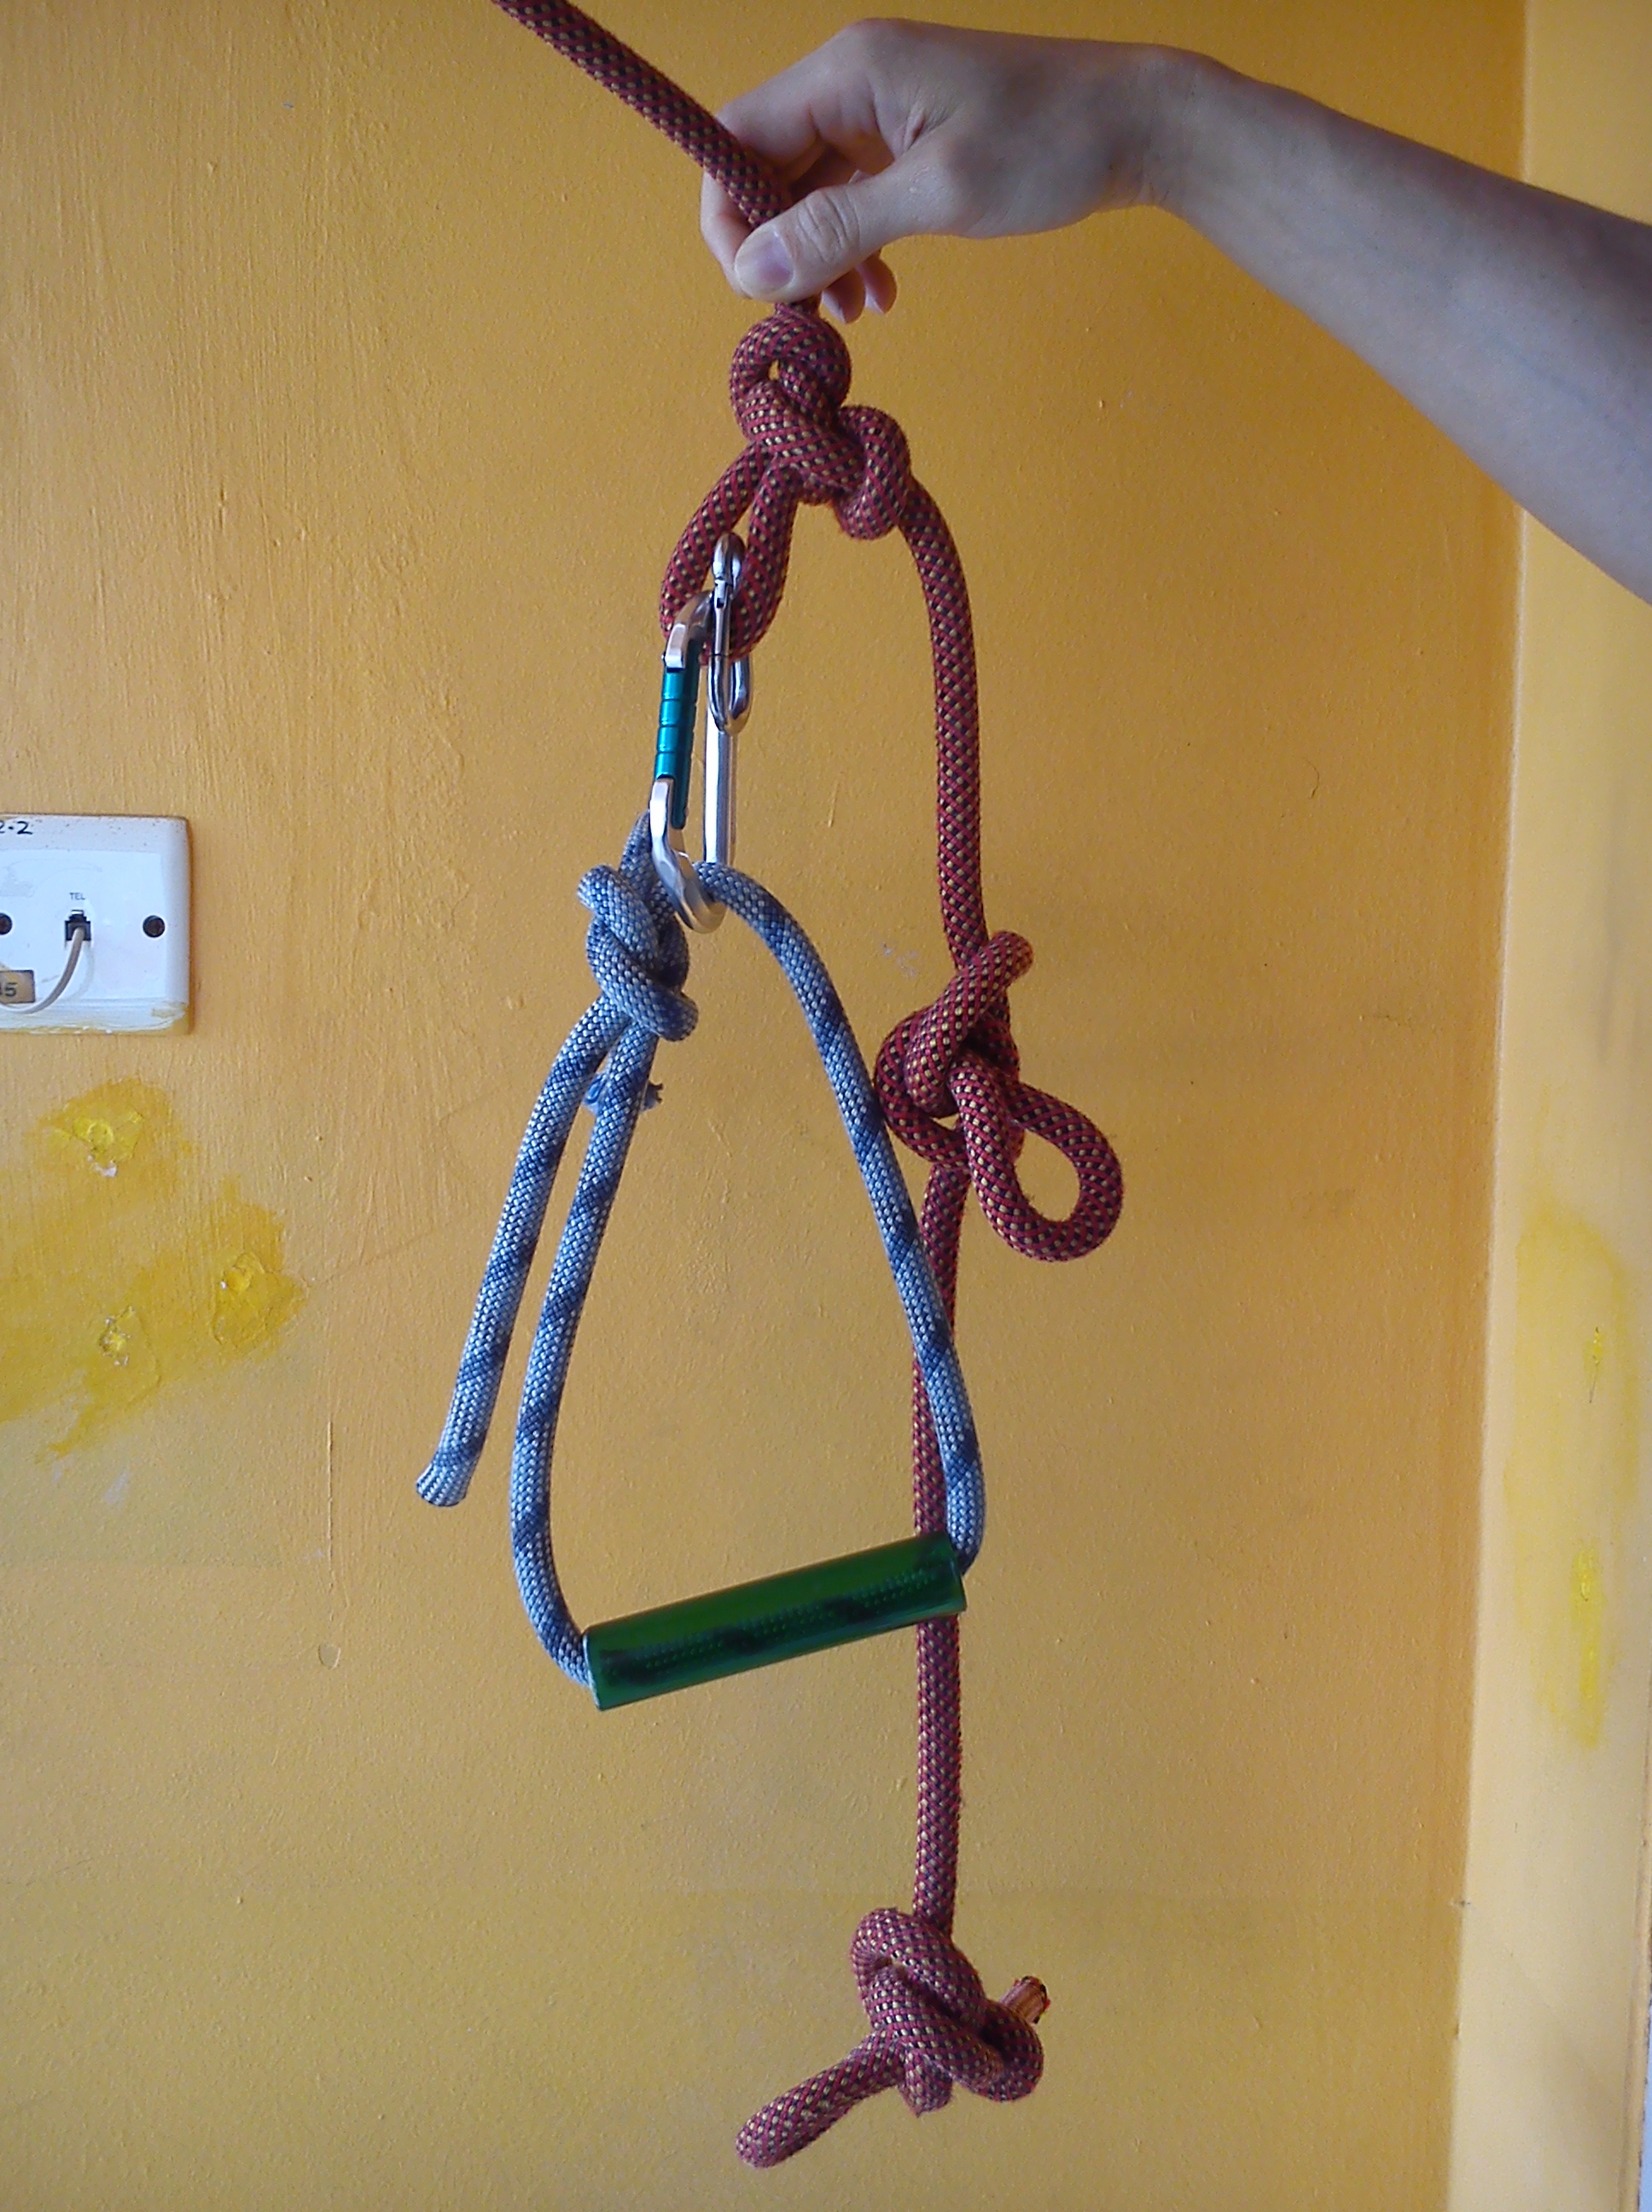 diy upcycle projects for old climbing ropes in search of